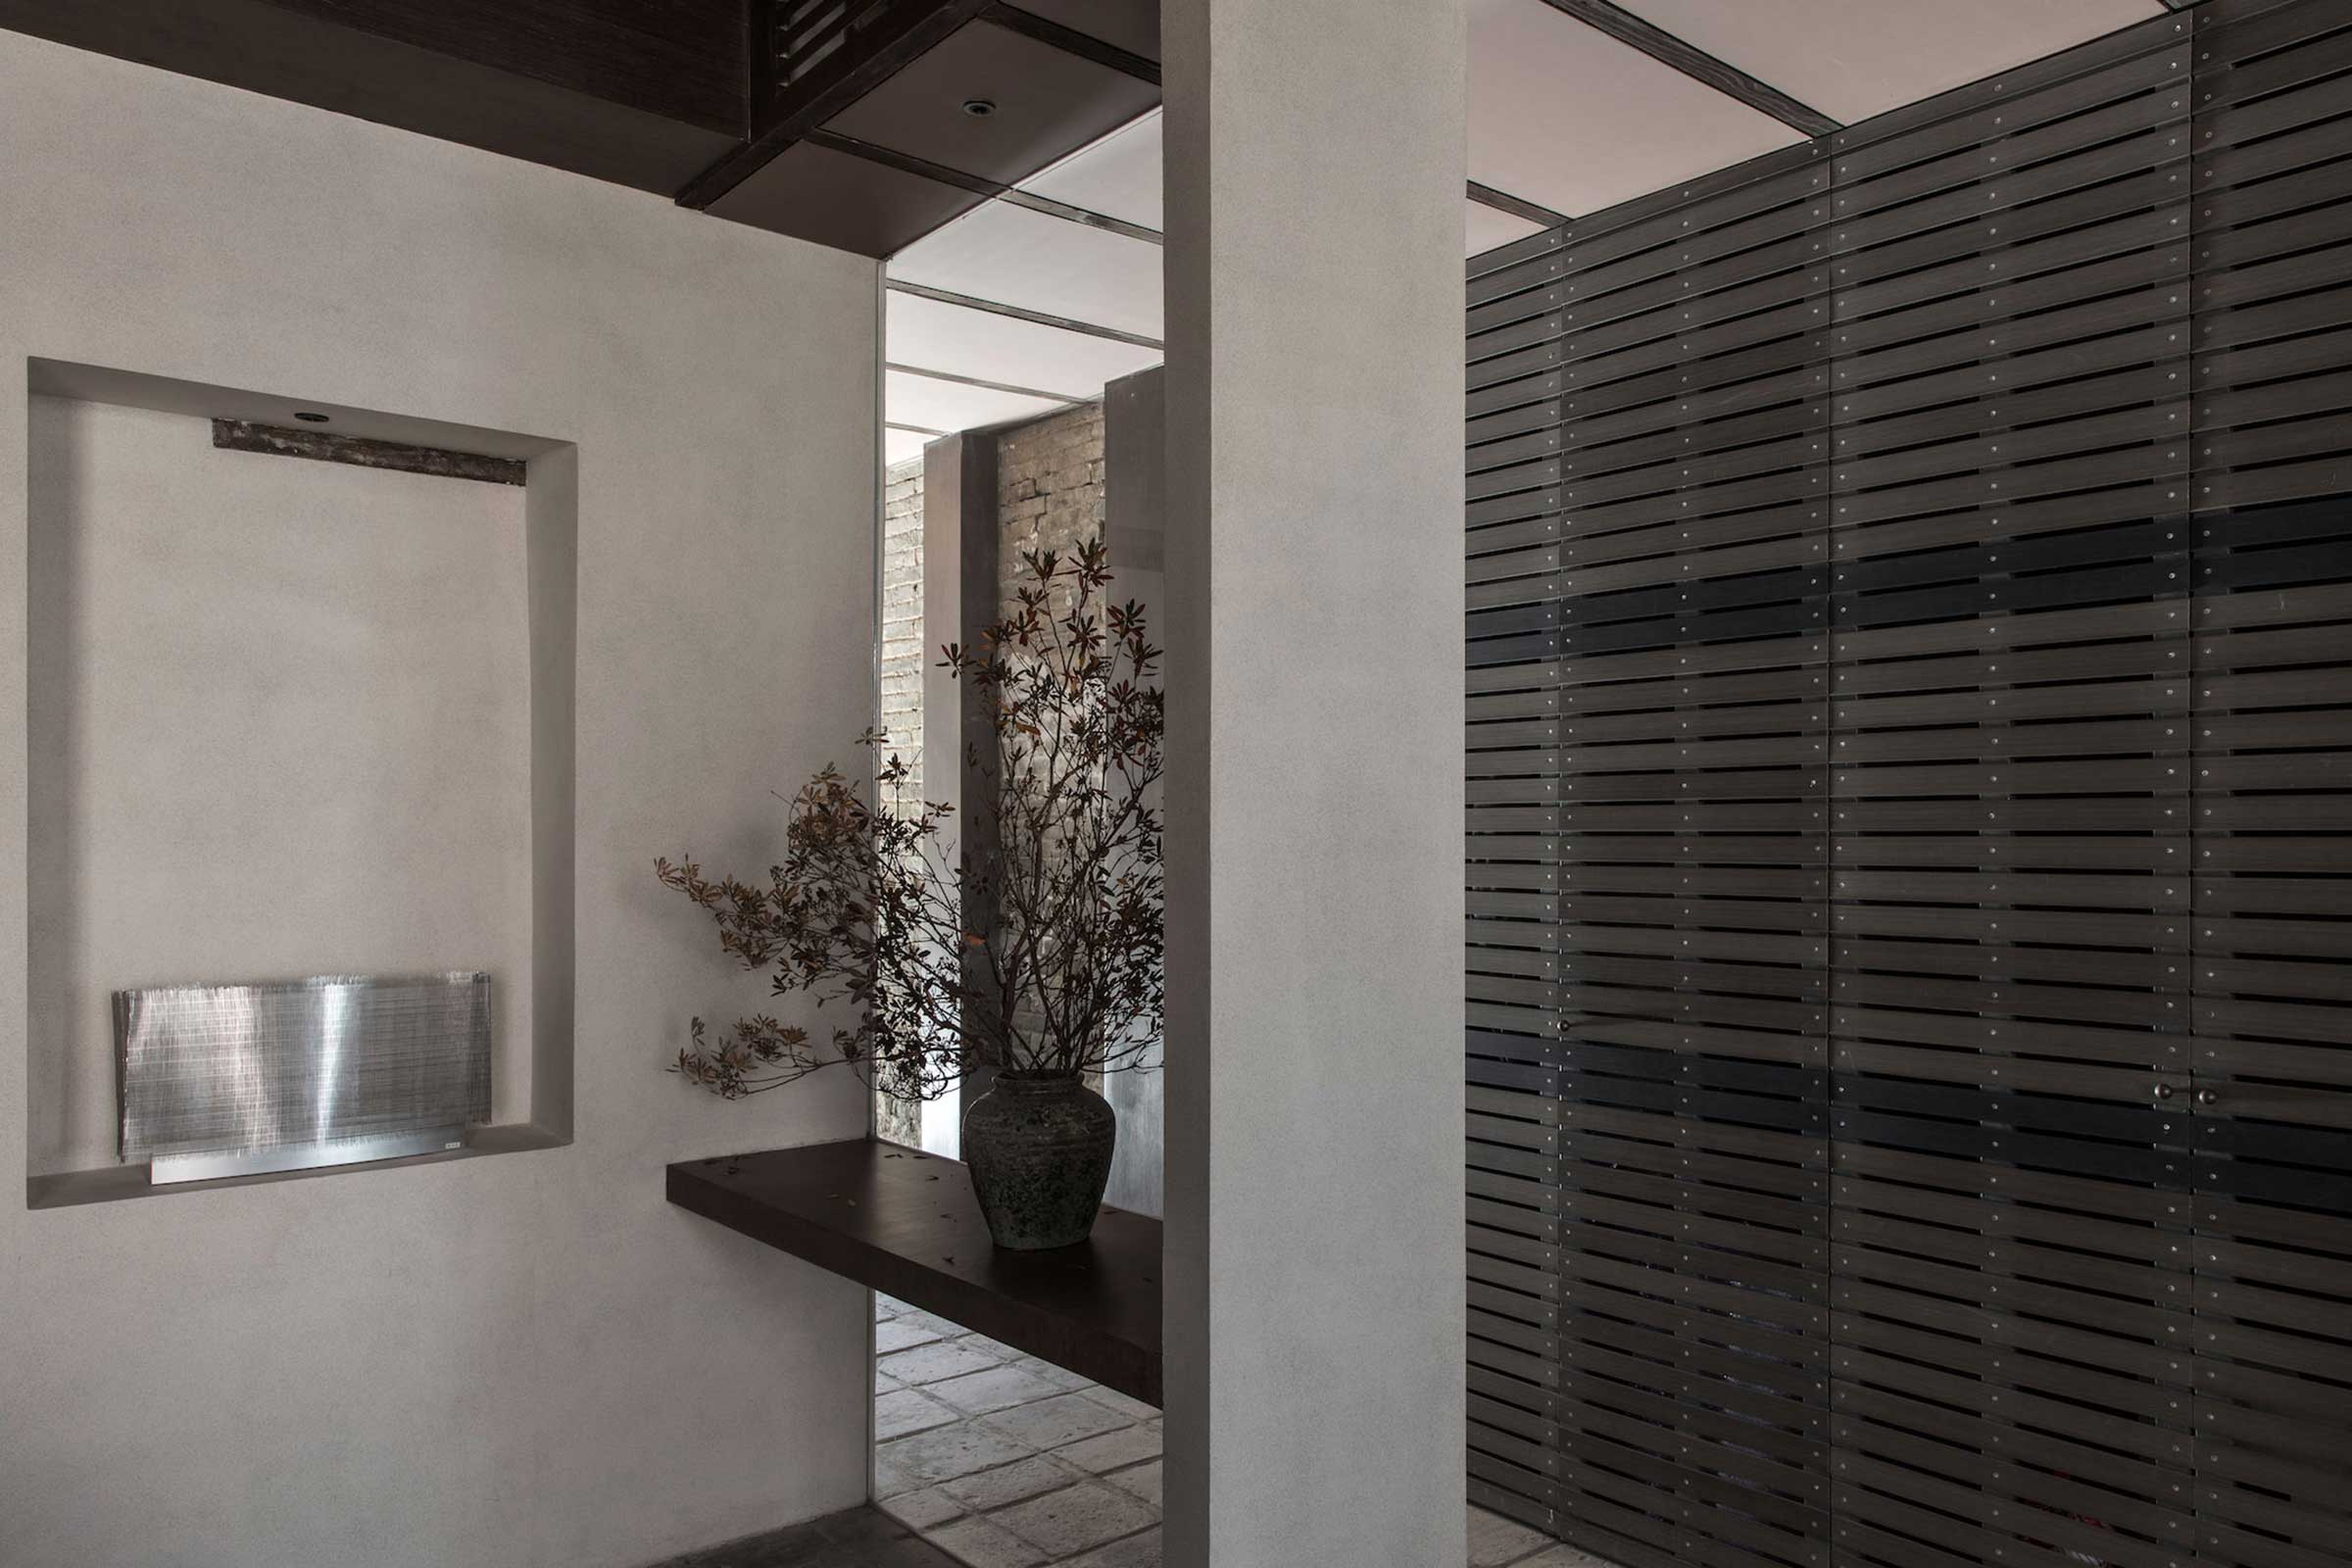 quad-house-ARCHISTRY-nolan-chao-15--looby-.jpg